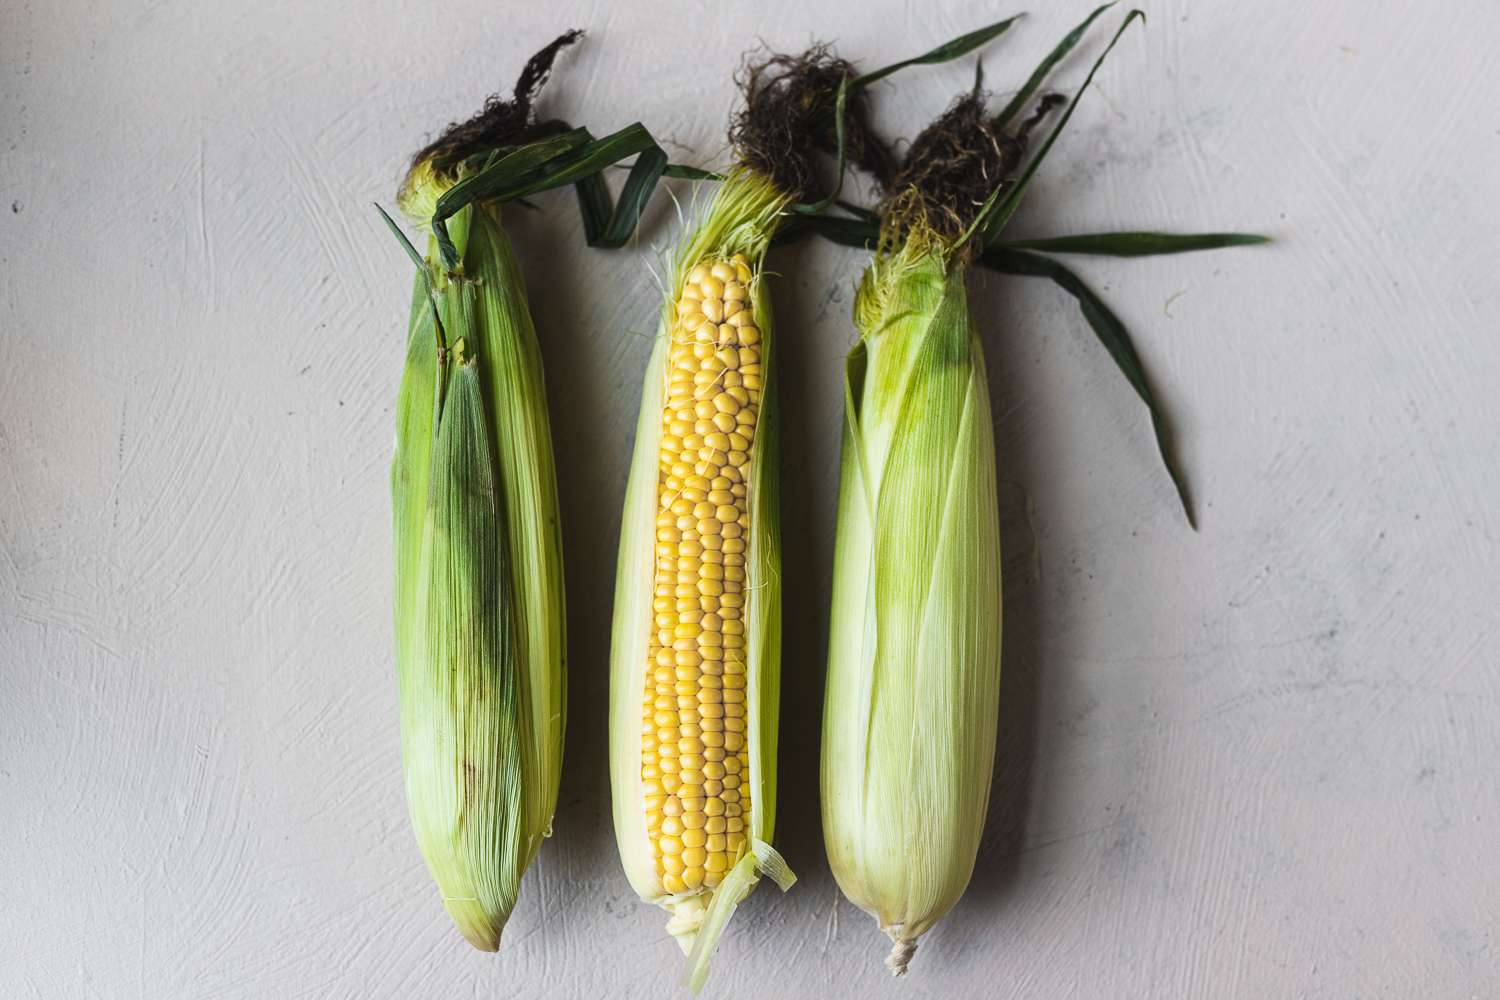 Ingredients for steamed corn